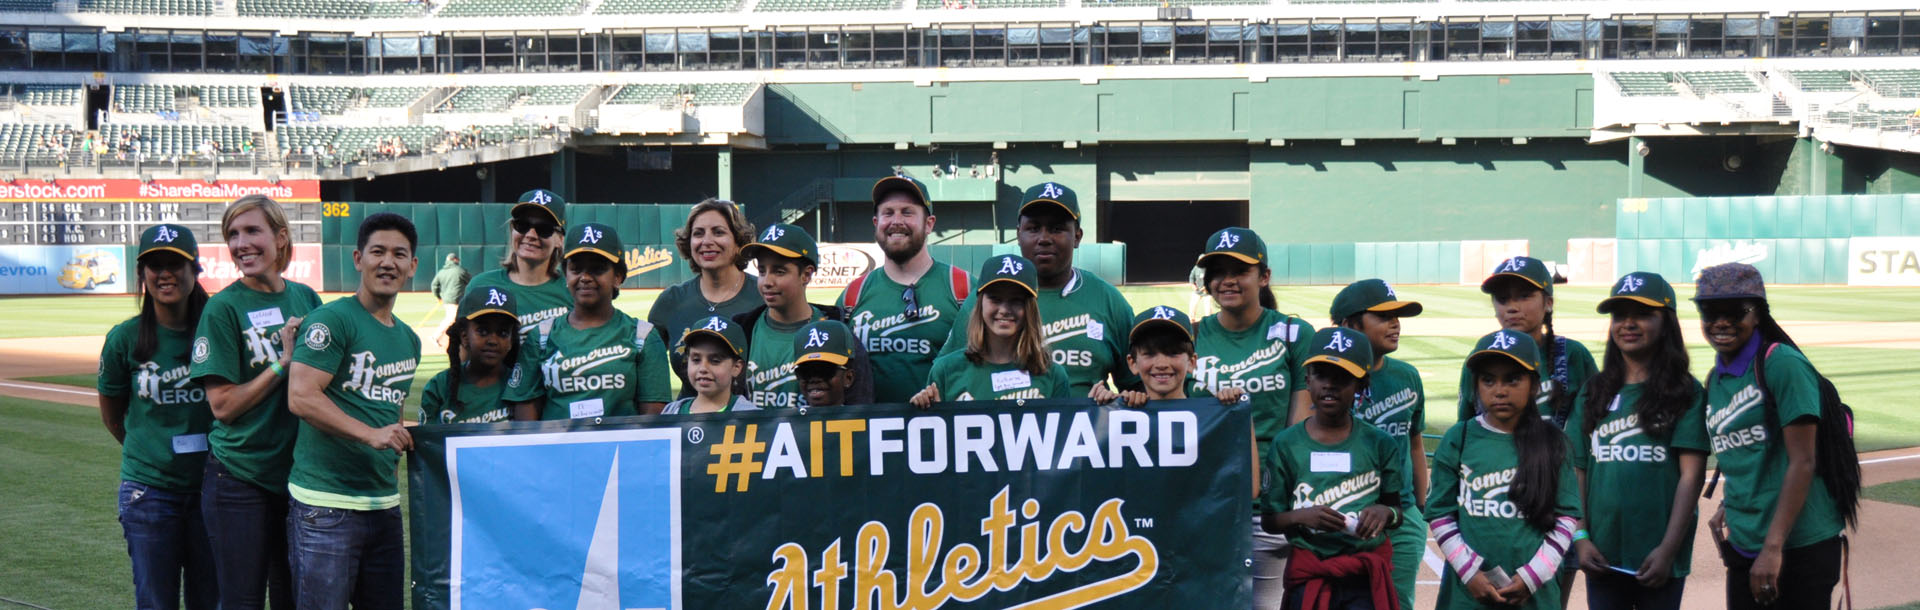 Support HomeRun Heroes and the A's!